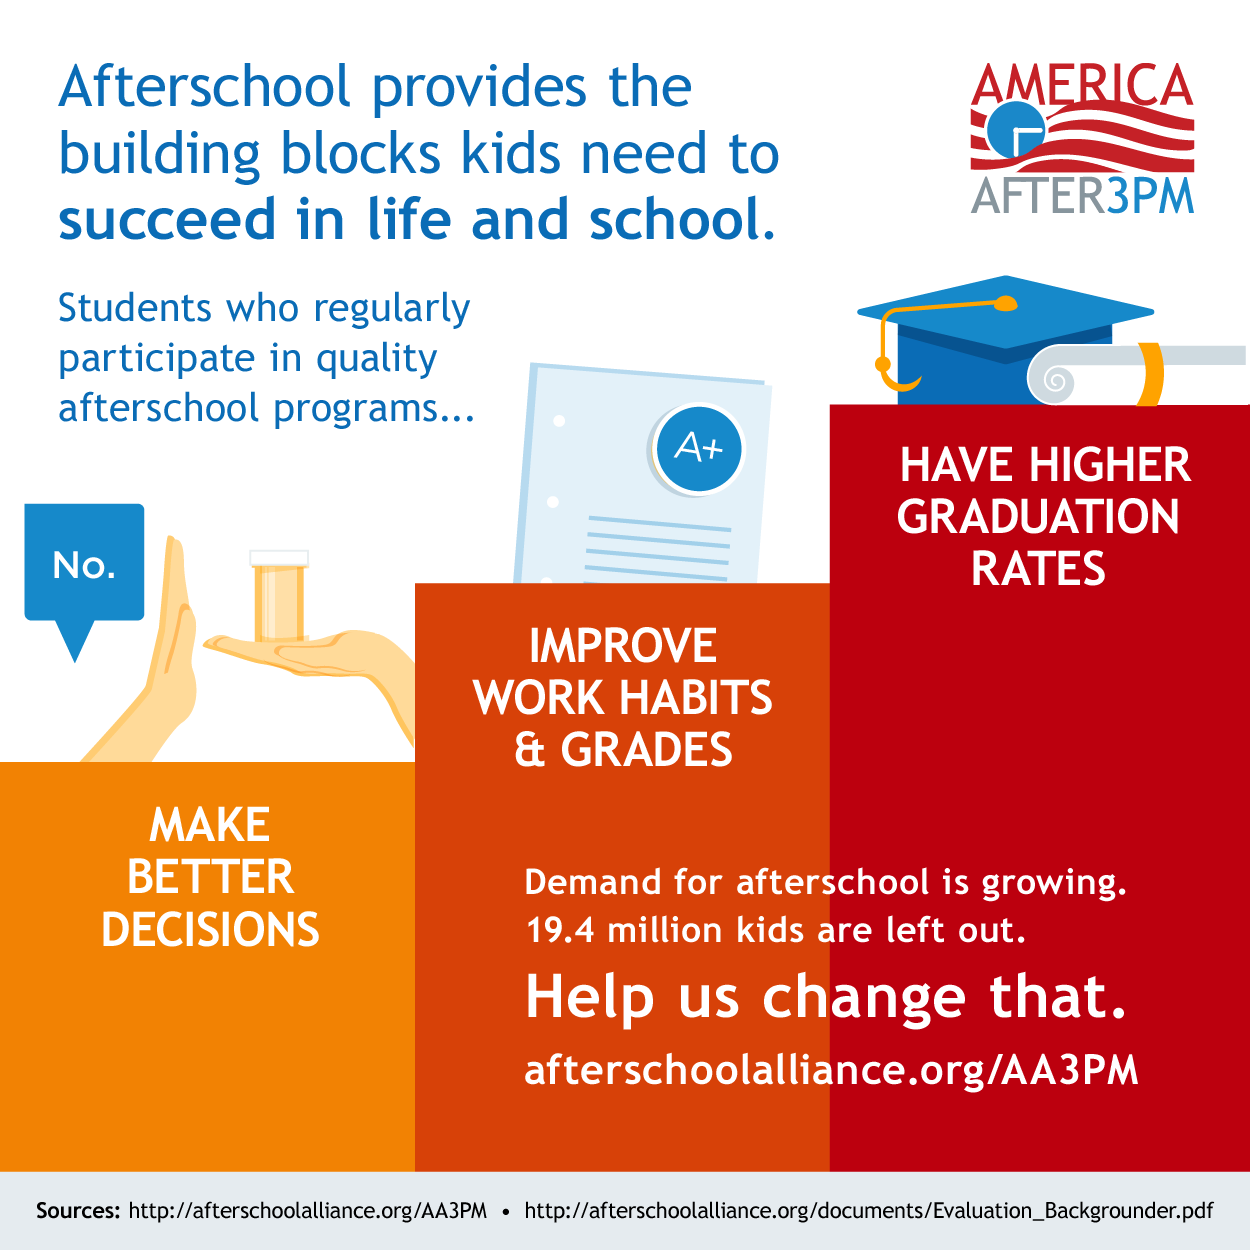 Afterschool Programs Foster Children's Social and Emotional ...